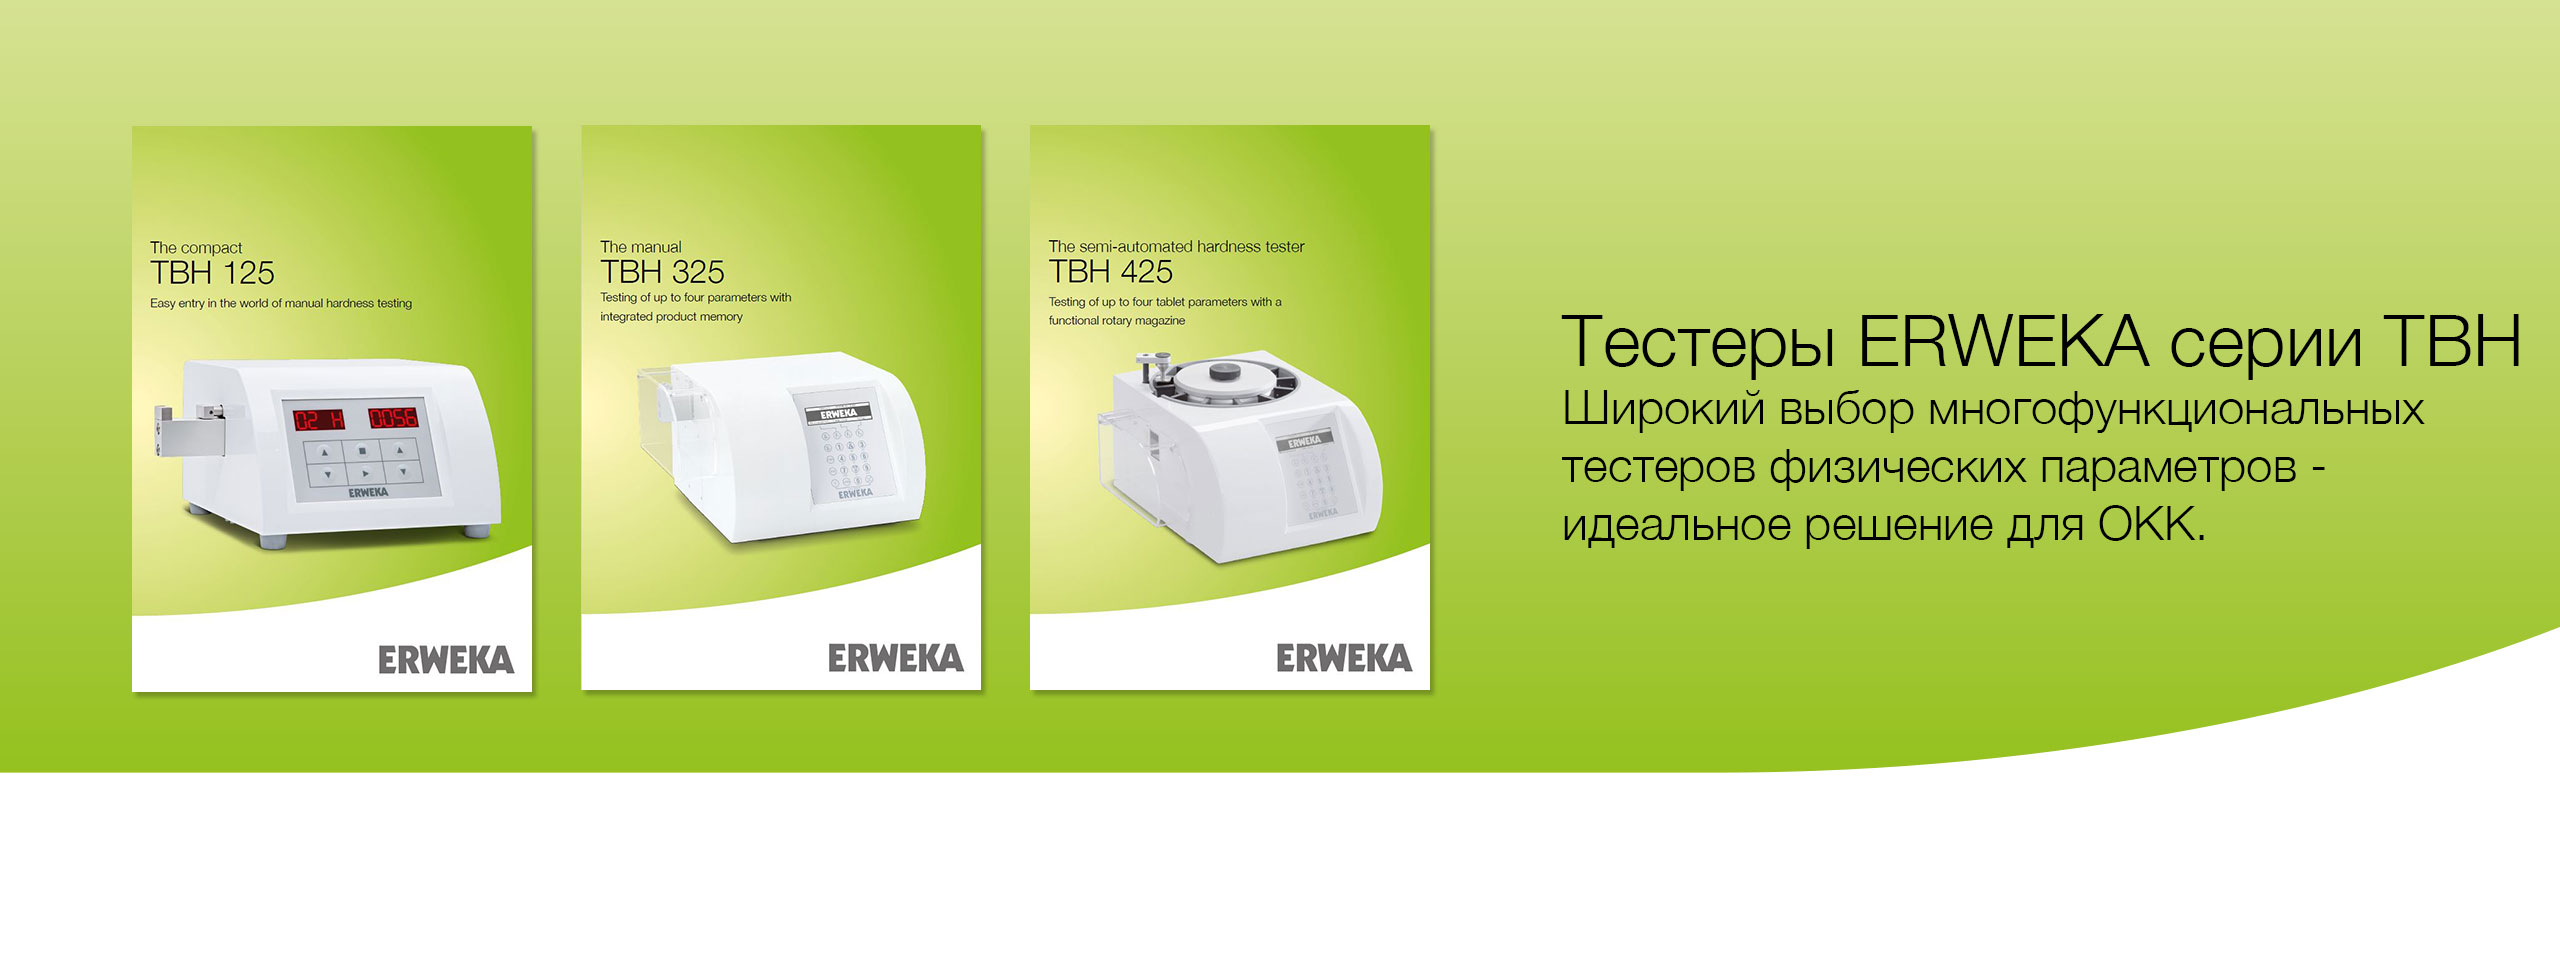 ERWEKA TBH Series - Broad range of tablet hardness and combination testers - The right solution for every challenge.